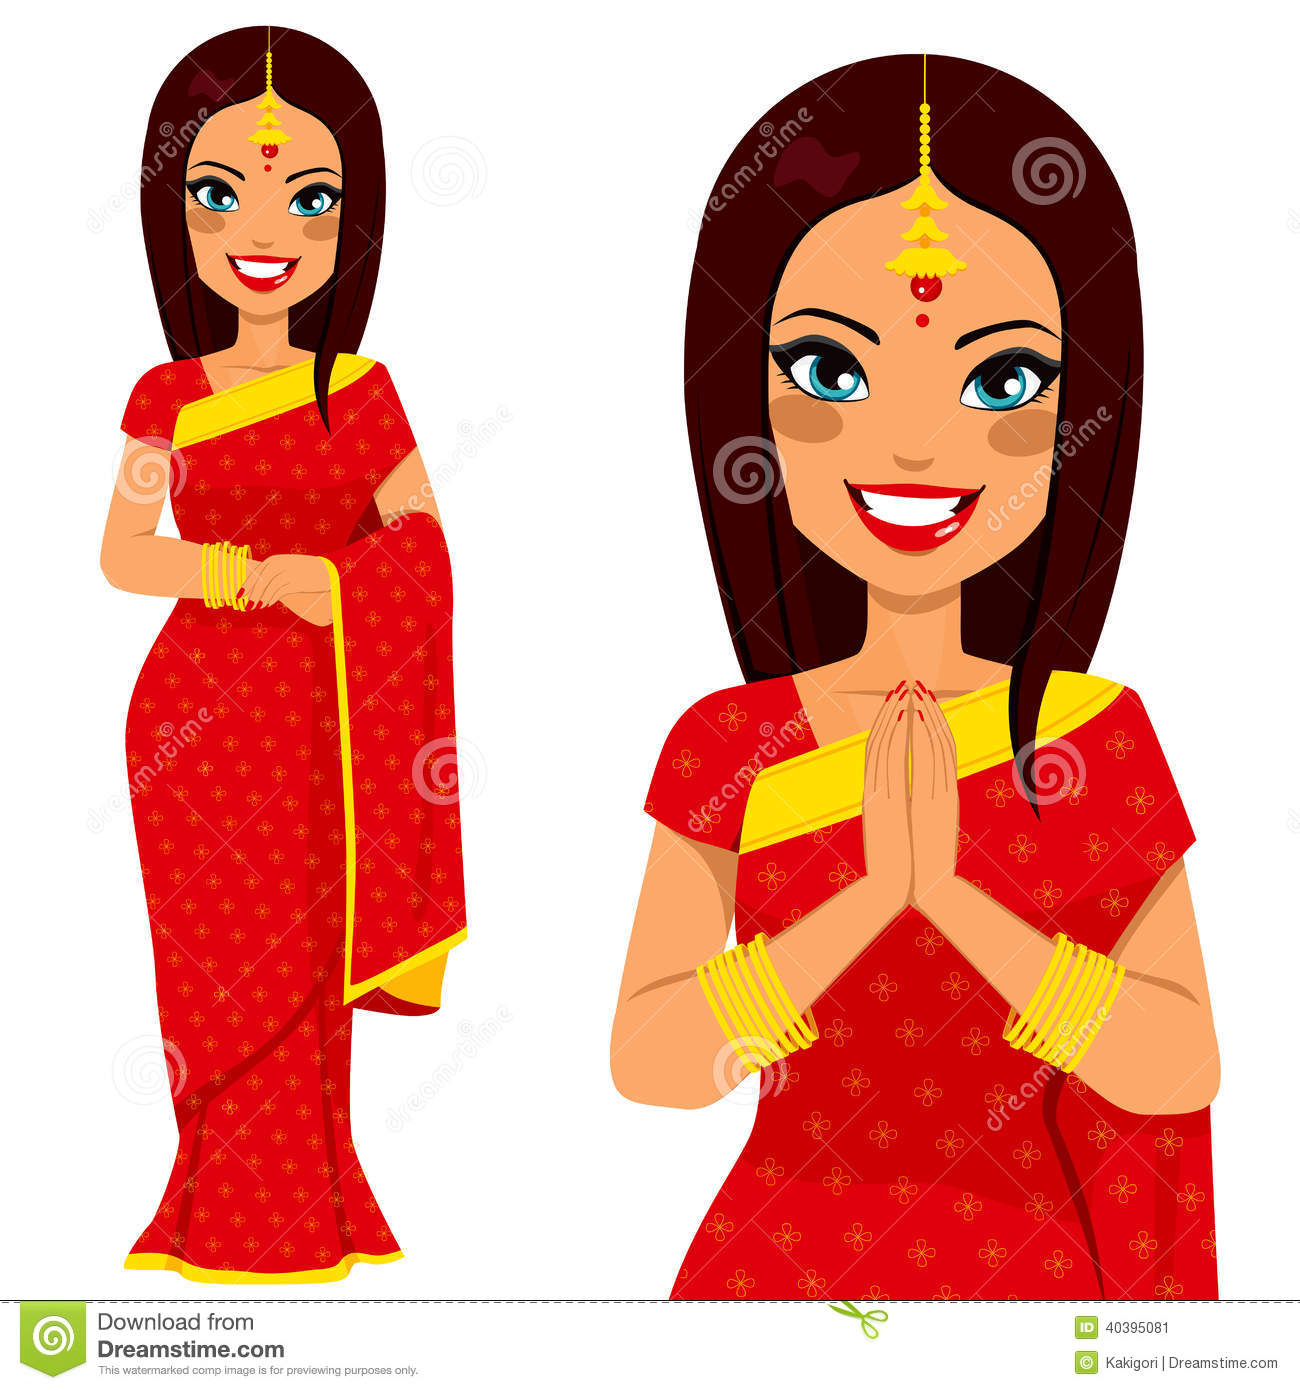 Indian traditional clipart image free library Indian woman clipart praying - ClipartFox image free library